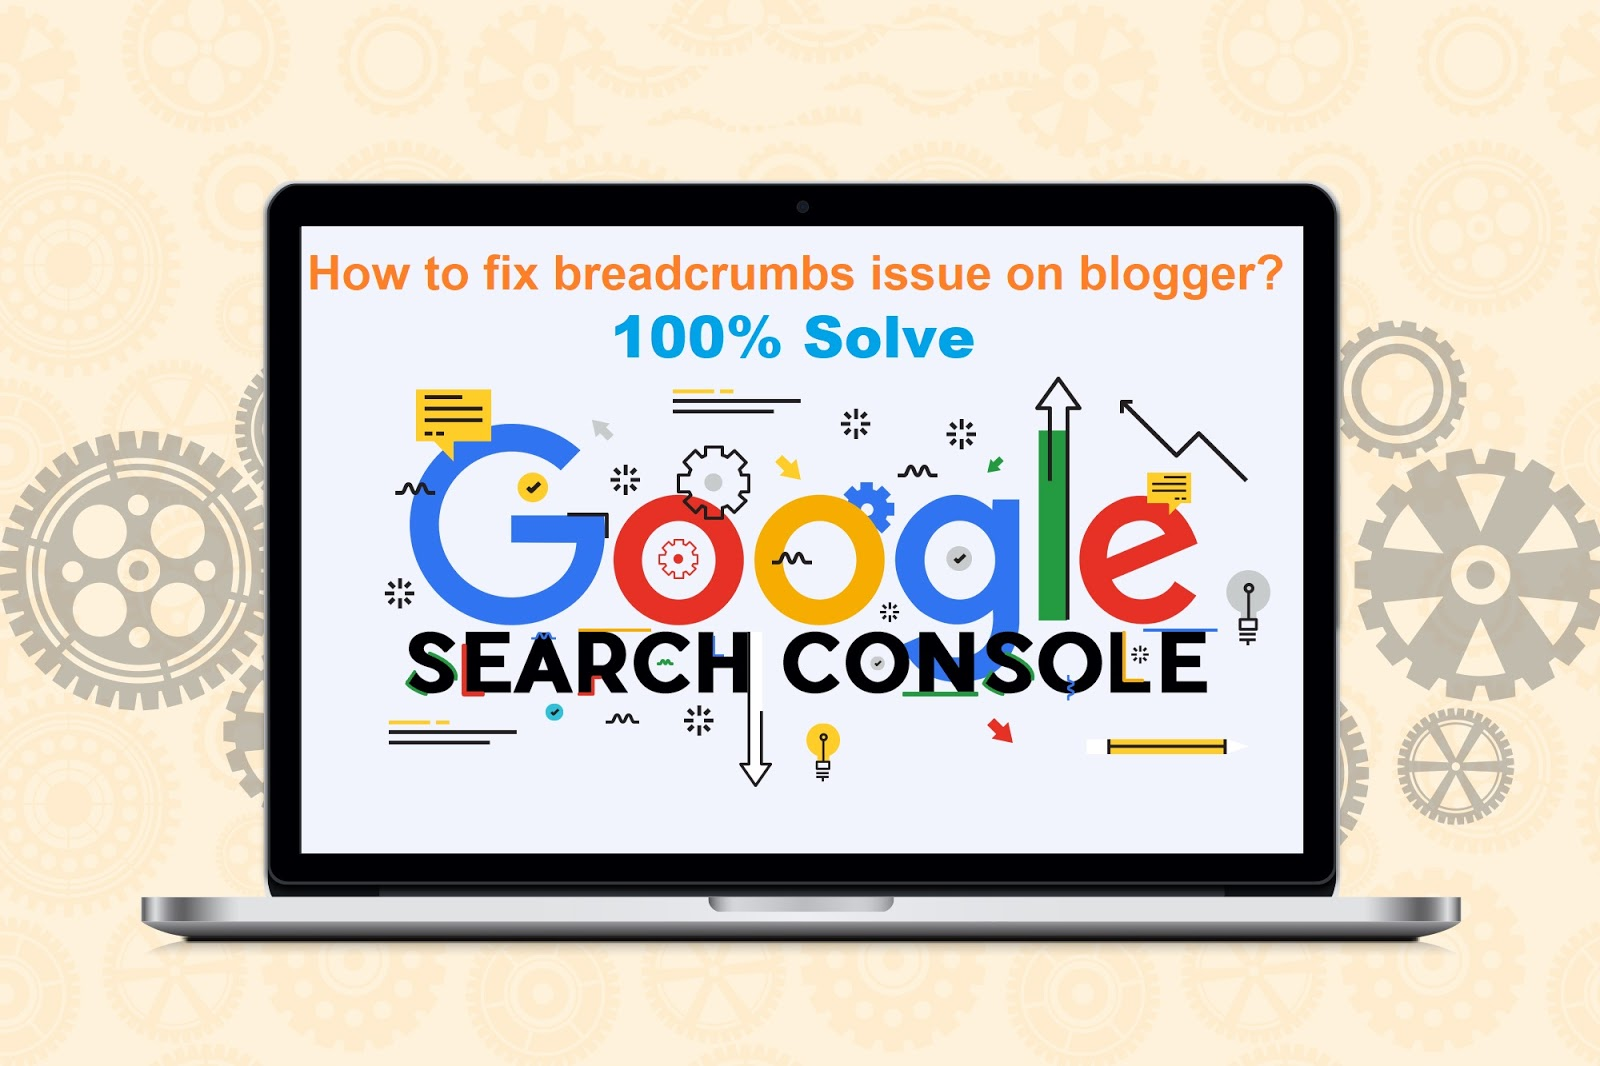 how to fix breadcrumbs issue on blogger,how to fix breadcrumbs error on blogger